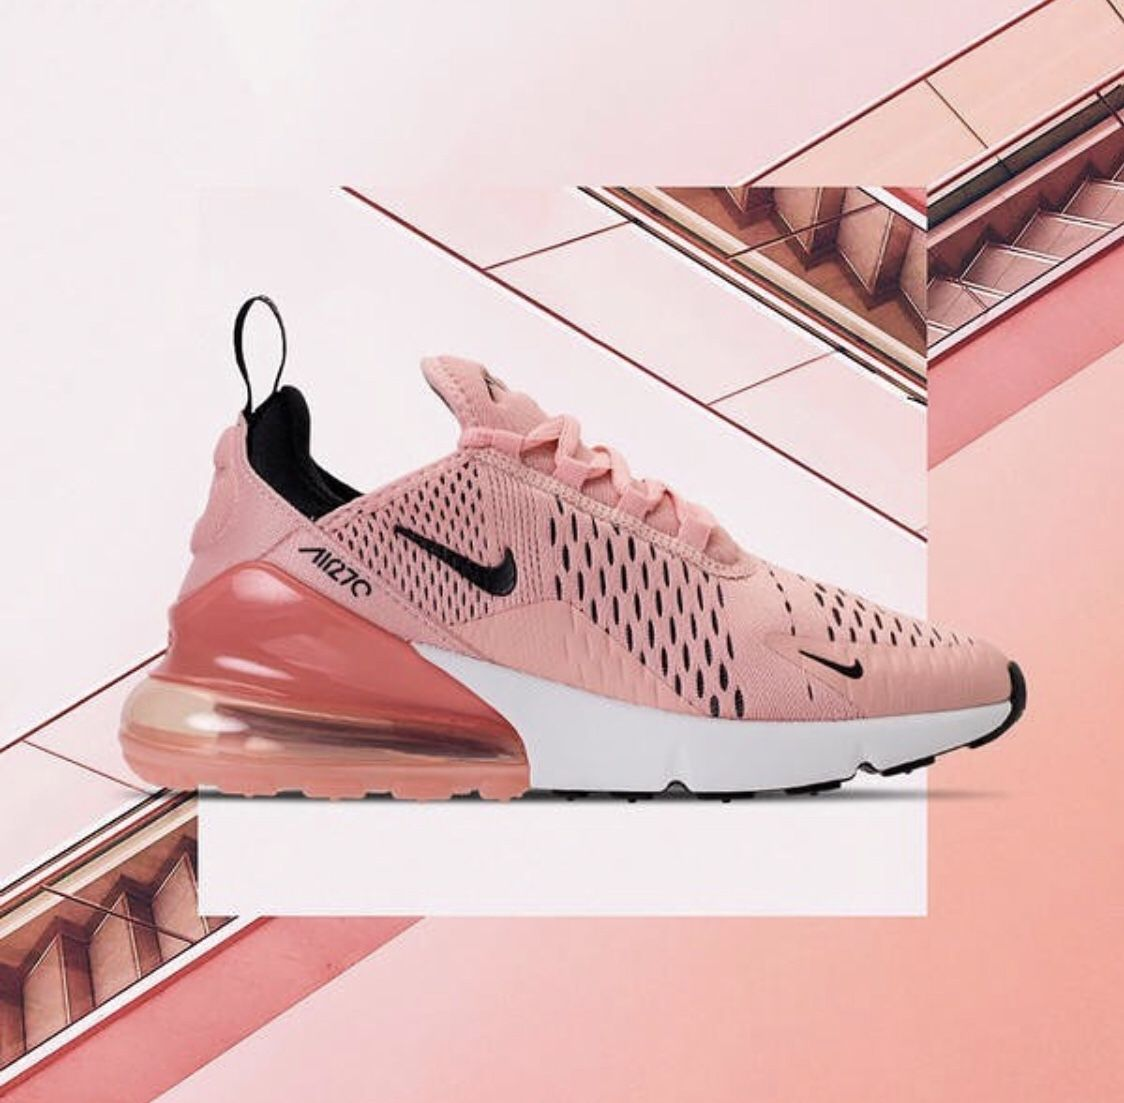 meet separation shoes super cheap Nike Air Max 270 in 2019 | Nike air max, Air max 270, Pink nikes